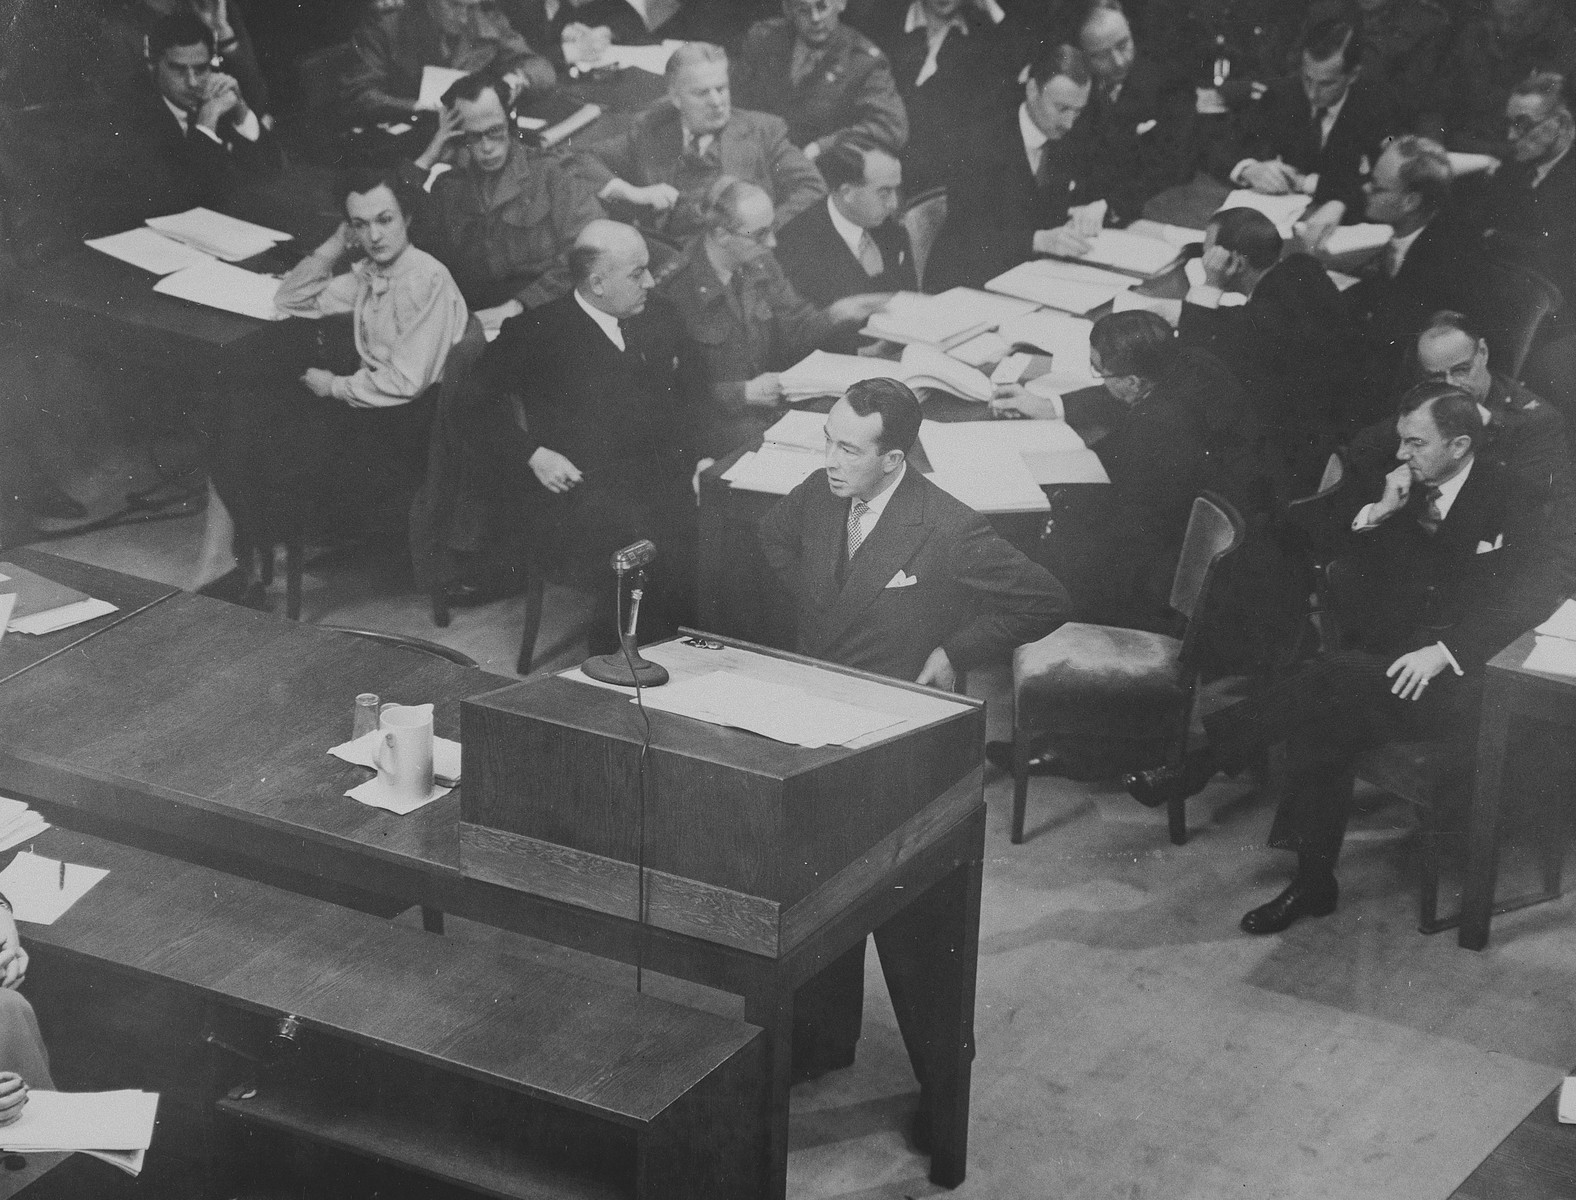 American prosecutor Colonel Telford Taylor speaks at the International Military Tribunal trial of war criminals at Nuremberg.